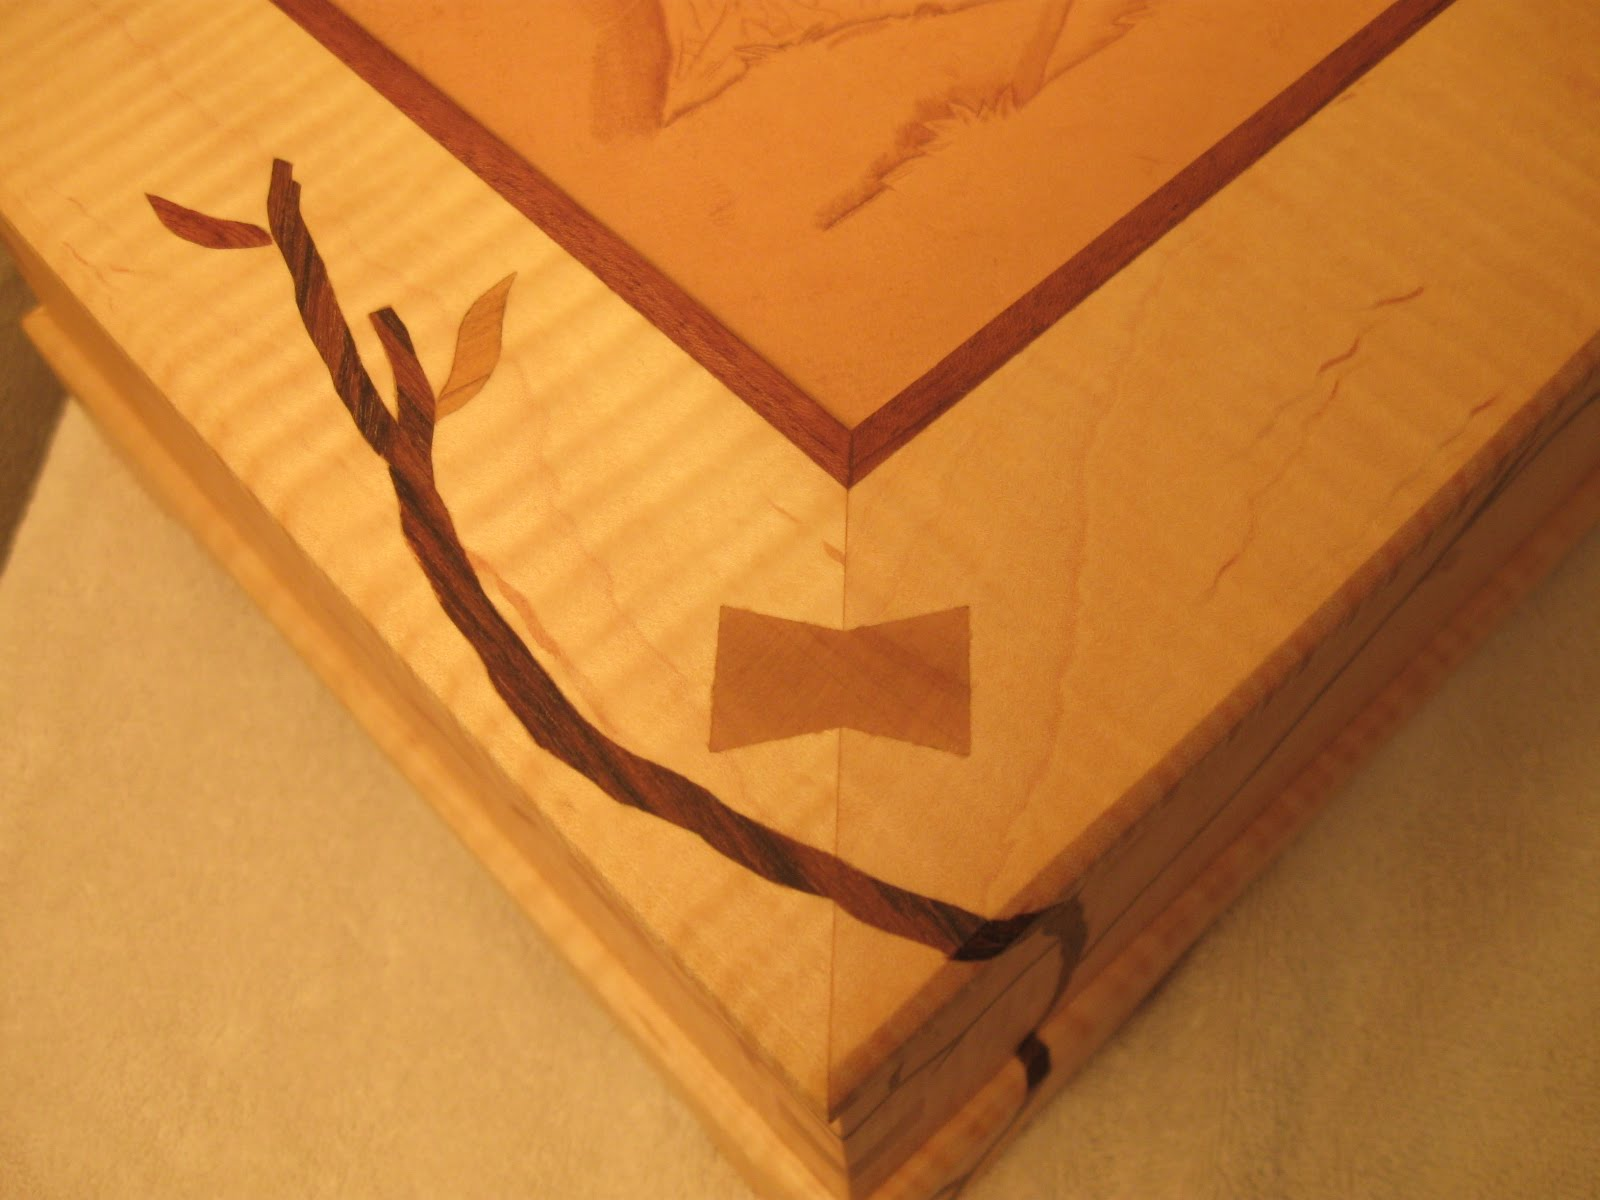 book of bow tie joint woodworking in uk by mia egorlin com